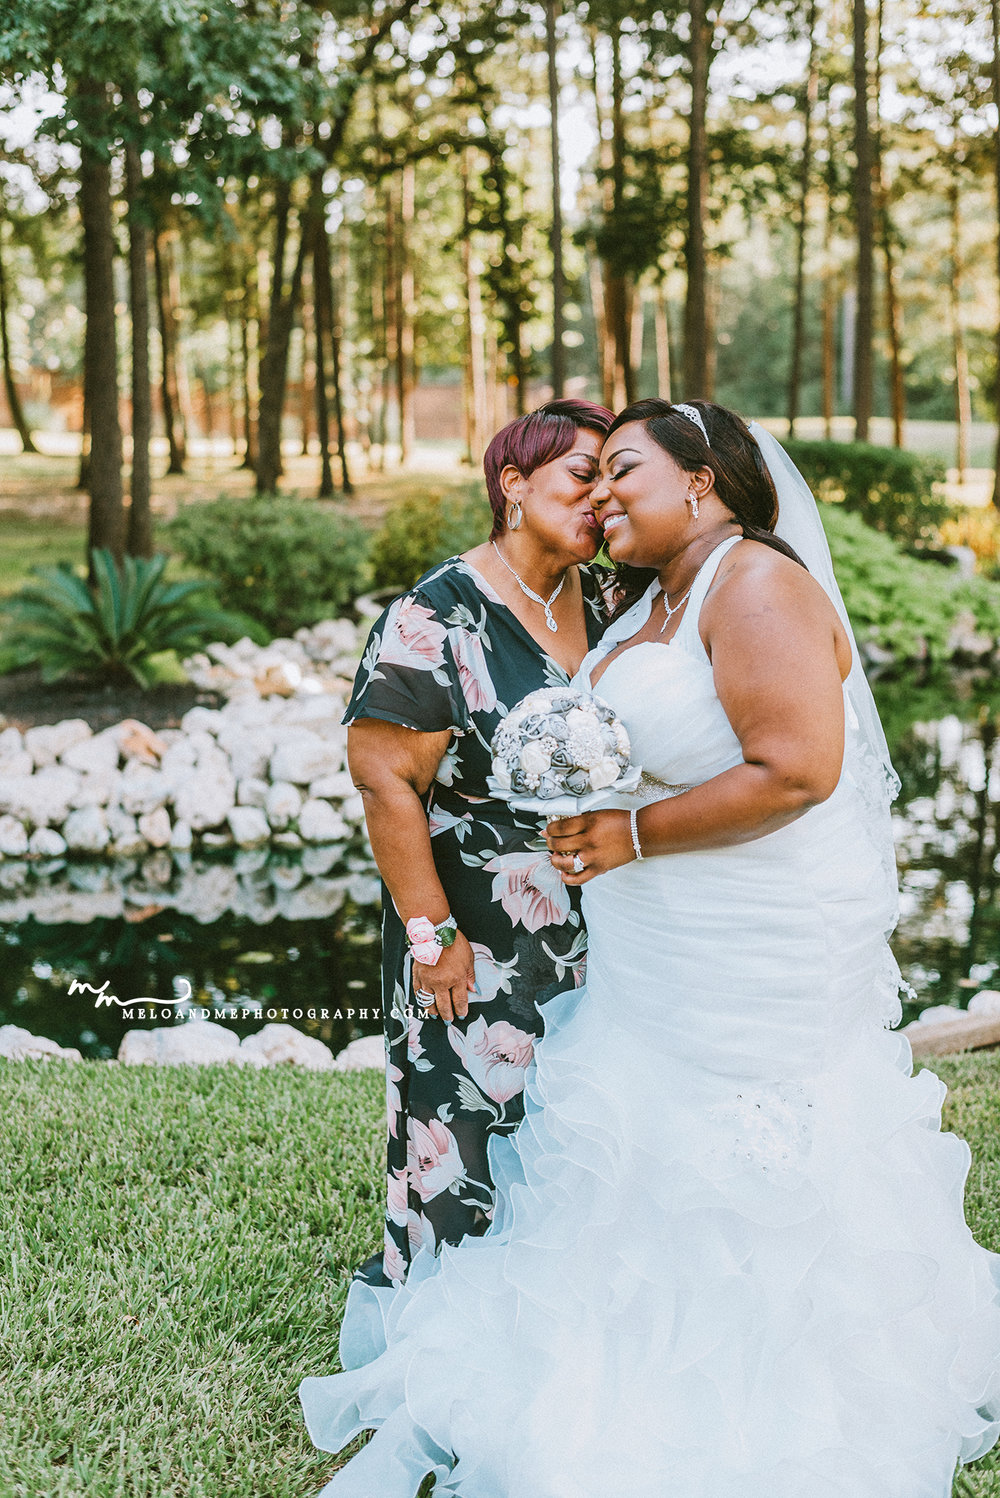 the springs event venue, montgomery tx, conroe tx, houston tx black bride family, mother of the bride, dallas tx, beaumont tx, houston tx weddings, african american bride couple